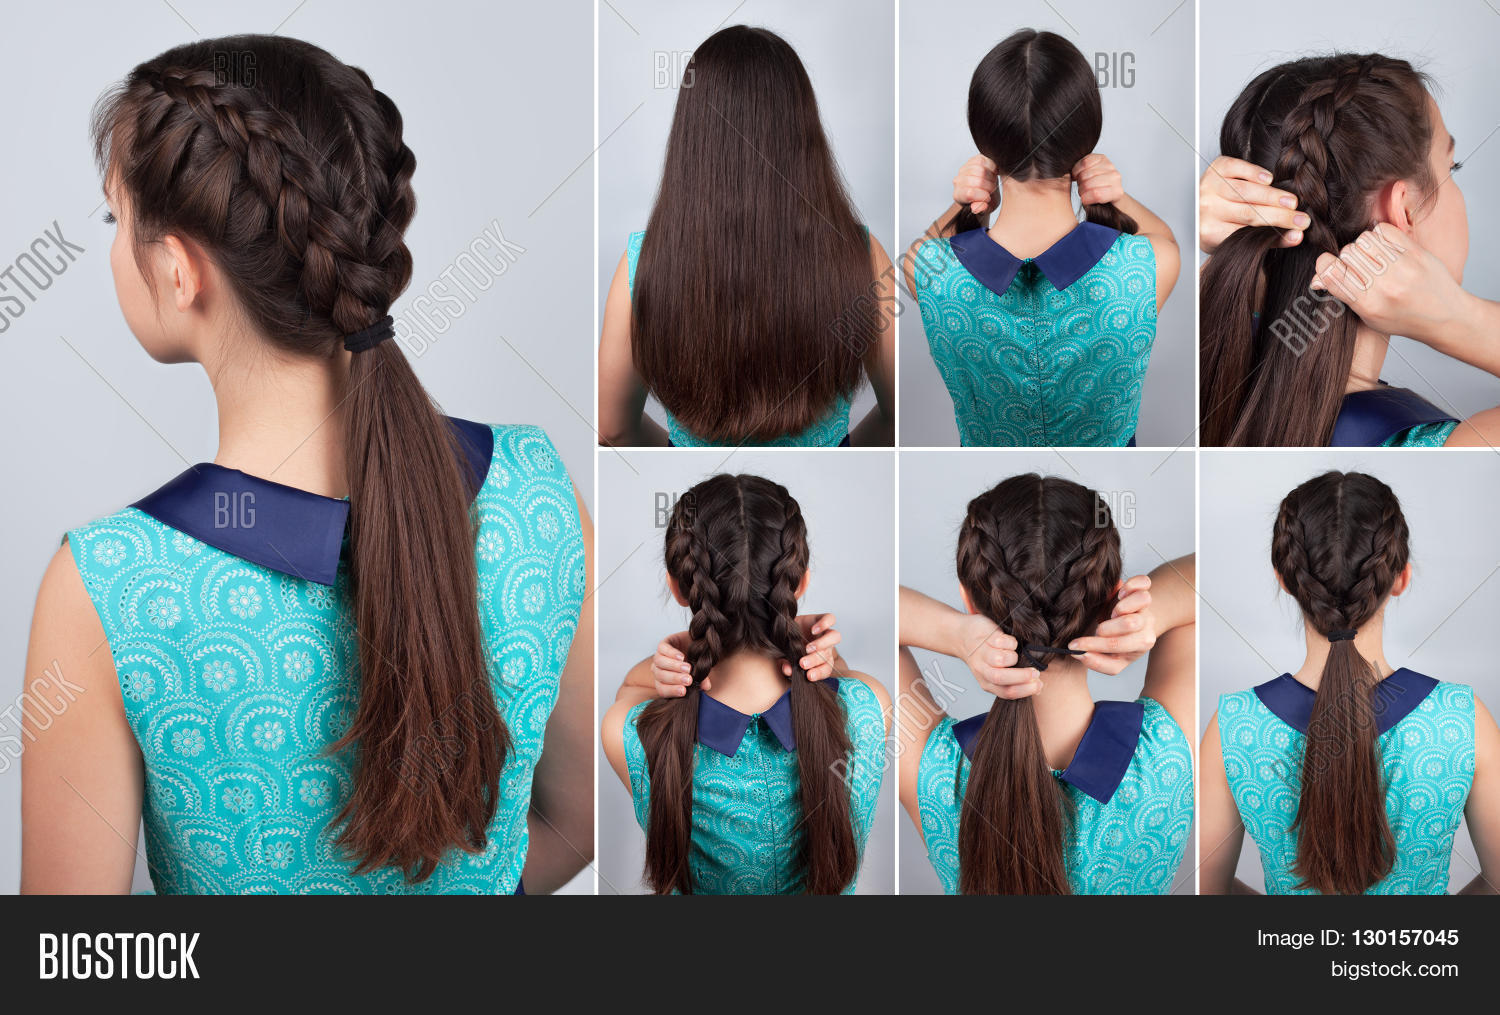 two braided hairstyles for long hair tutorial - hairstyles